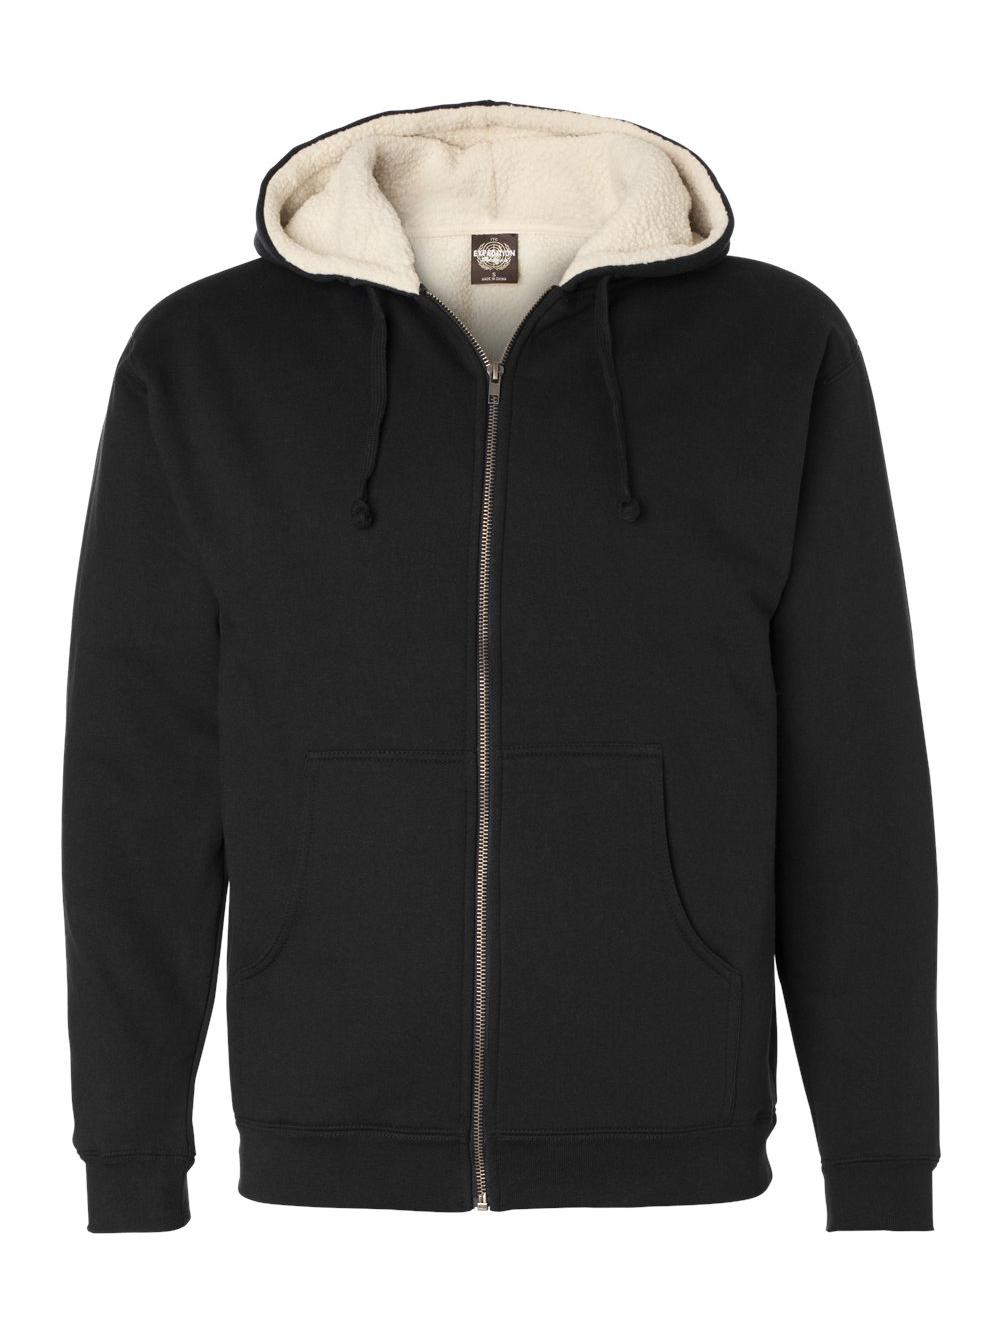 Sherpa Lined Full-Zip Hooded Sweatshirt EXP40SHZ S-4XL Independent Trading Co